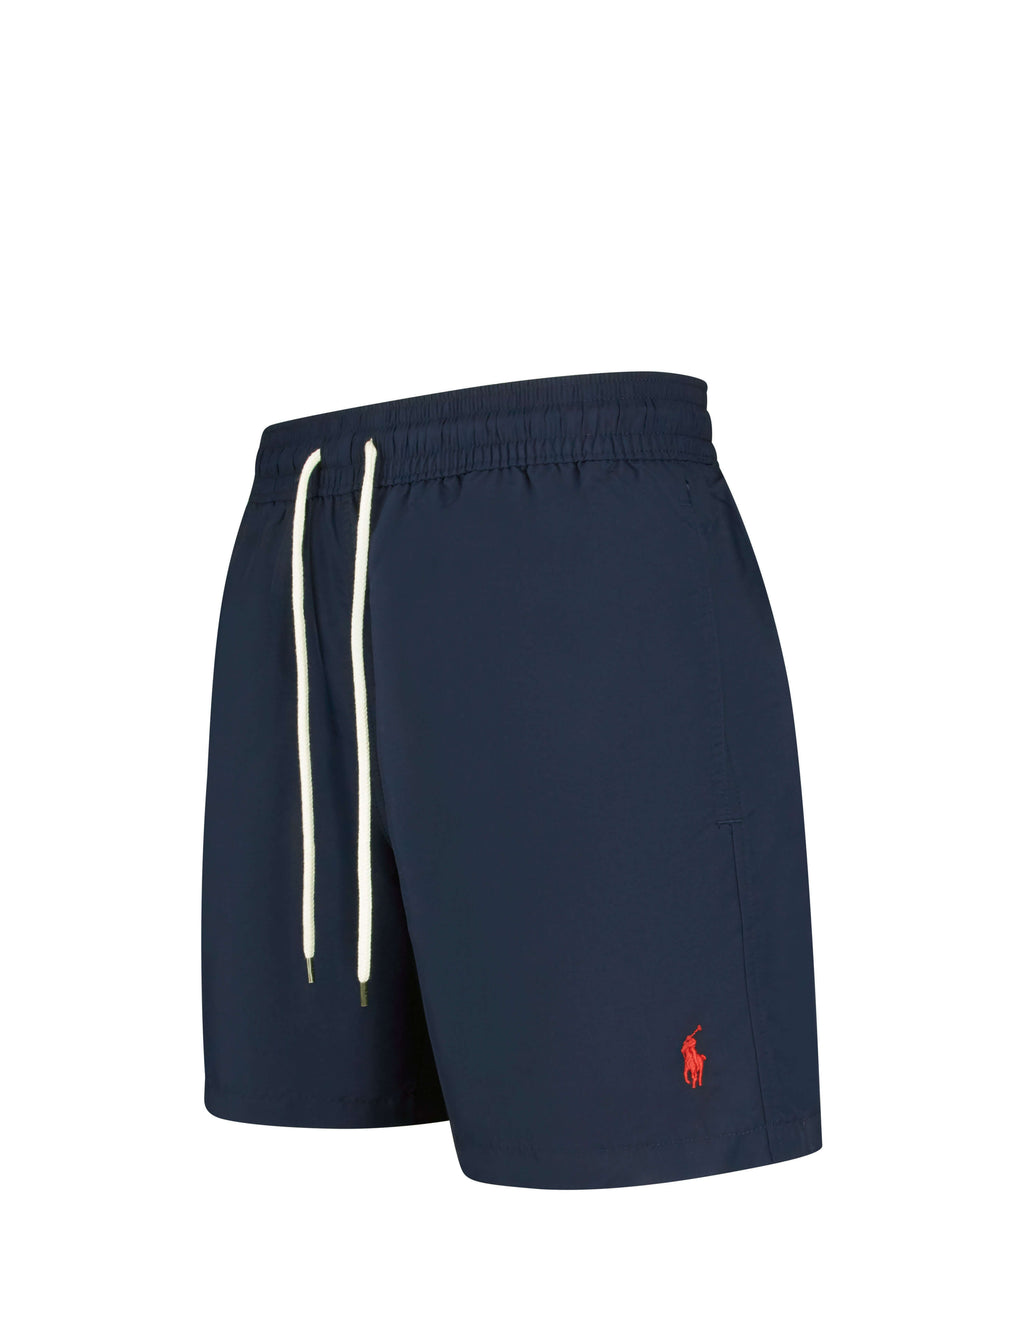 Polo Ralph Lauren Men's Giulio Fashion Newport Navy Traveler Swim Shorts 710659017005